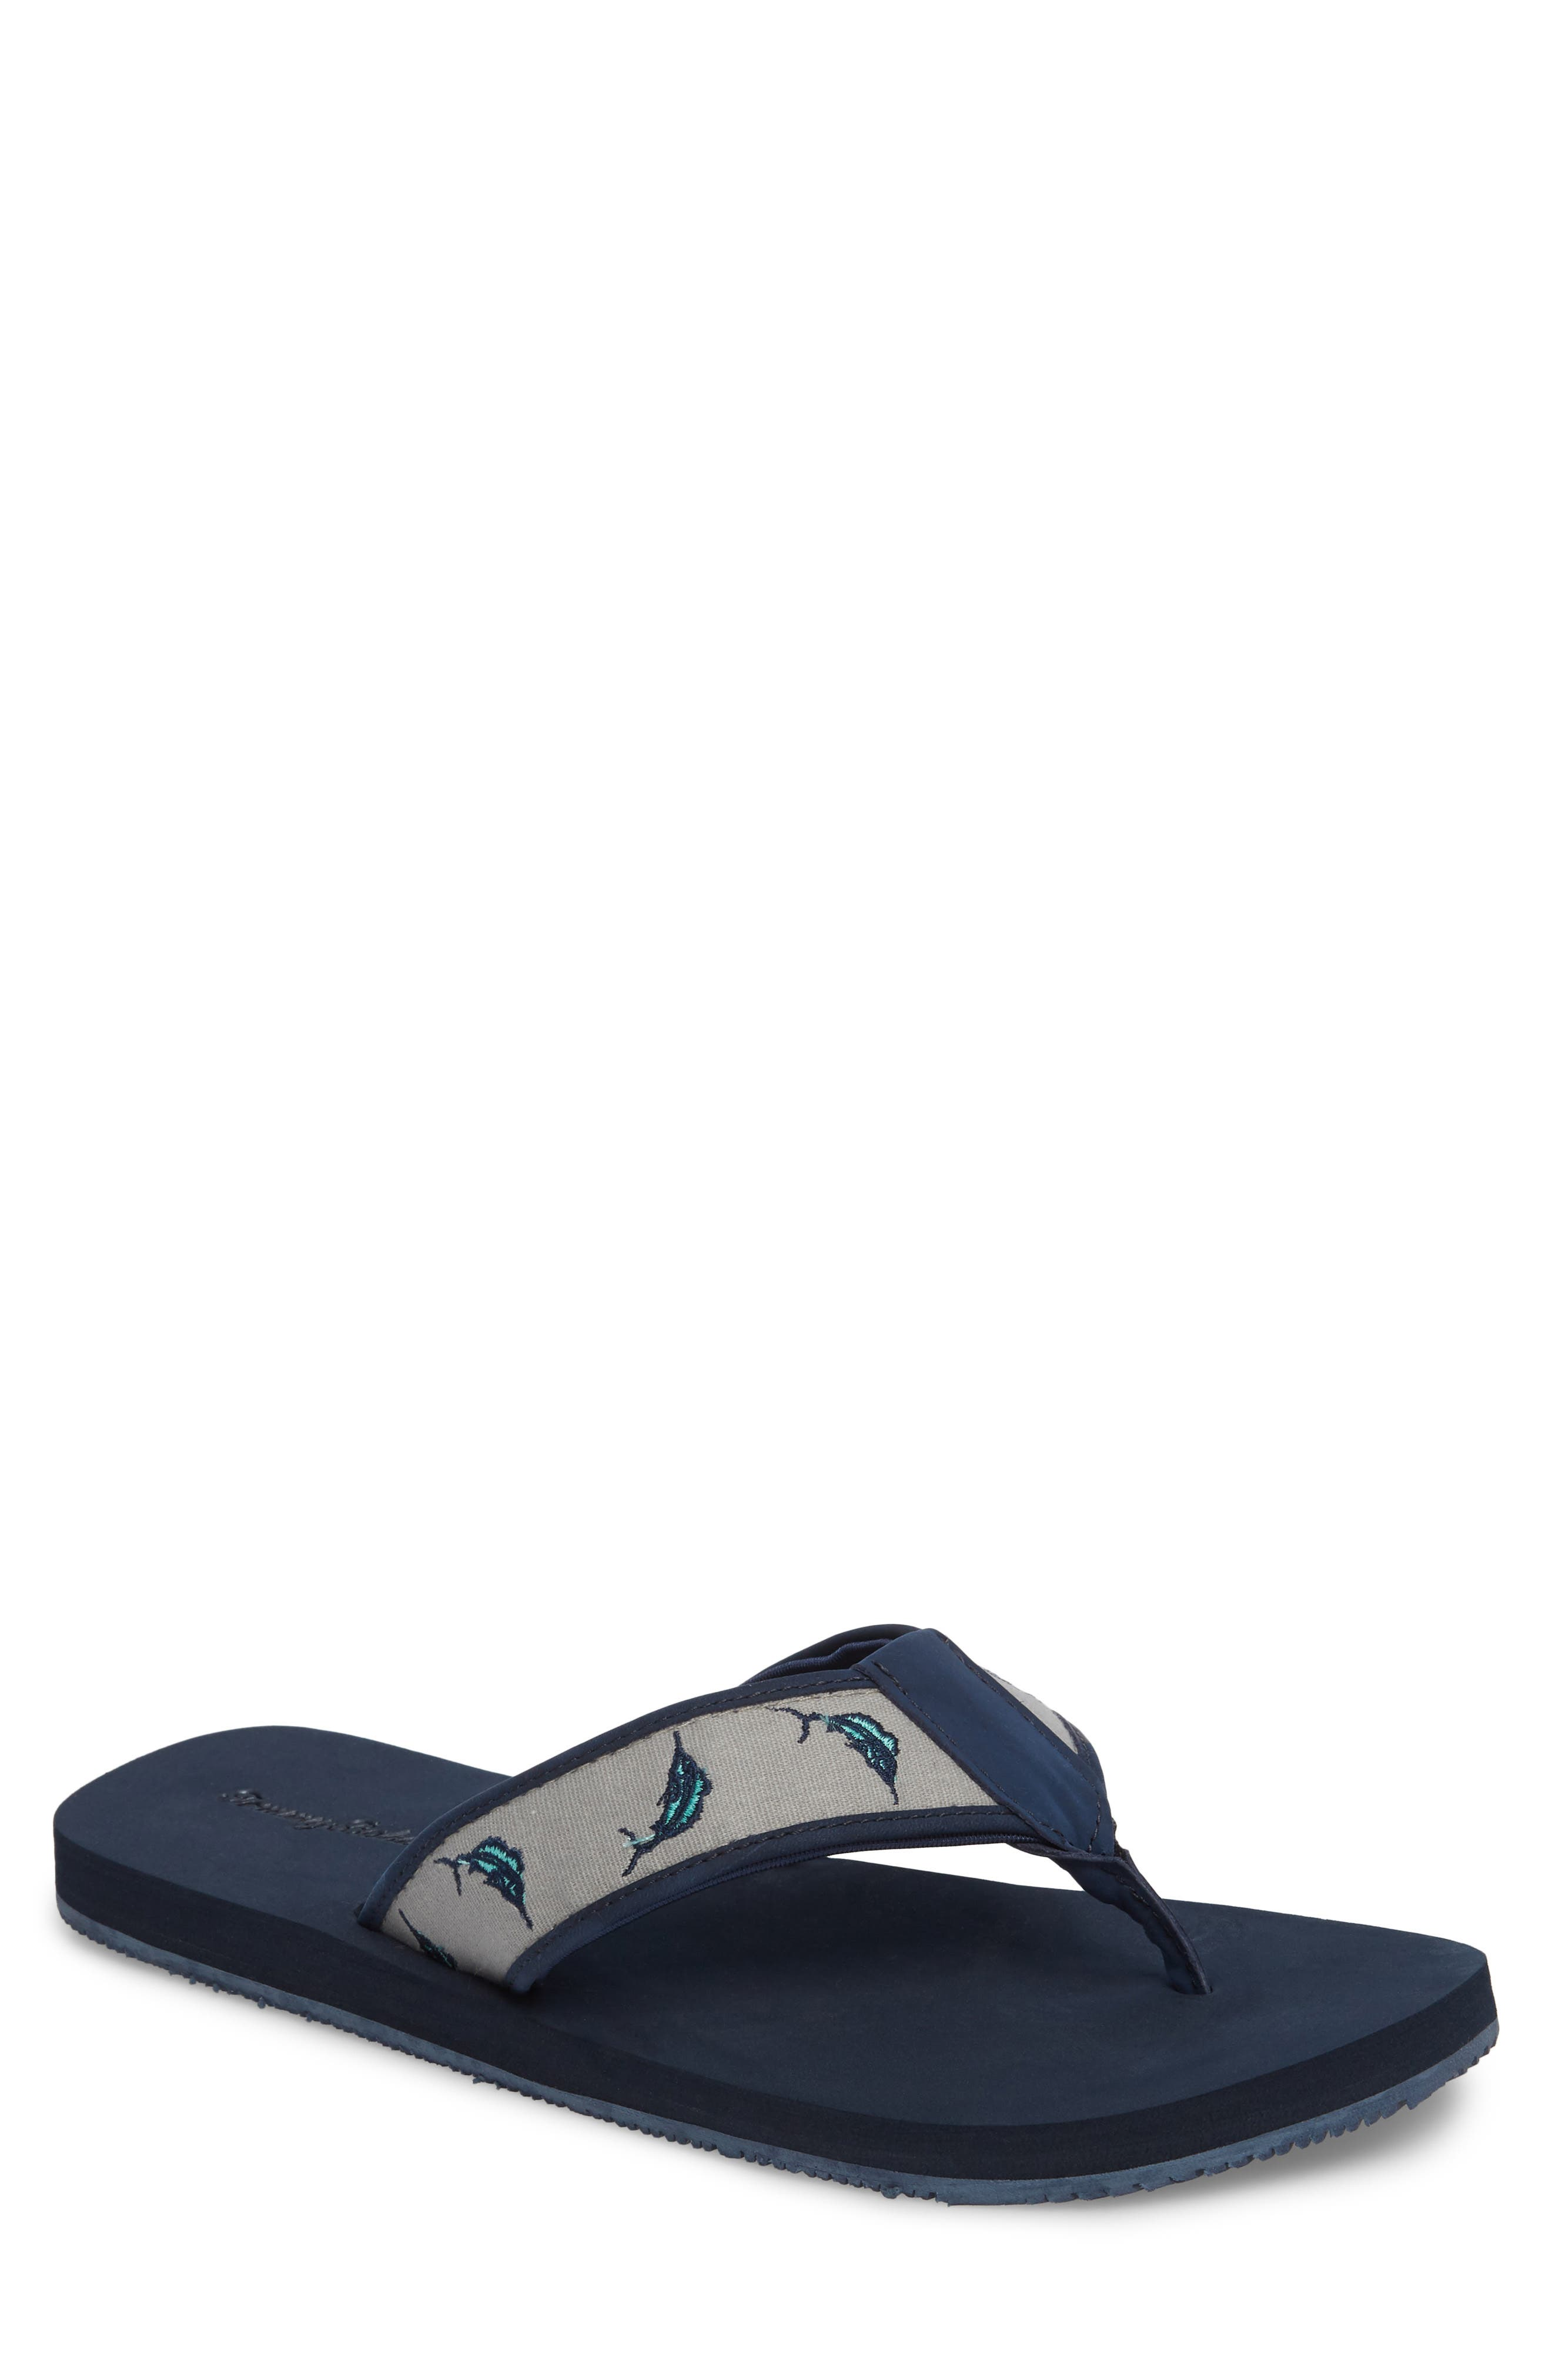 Tommy Bahama Allegro Flip Flop (Men)